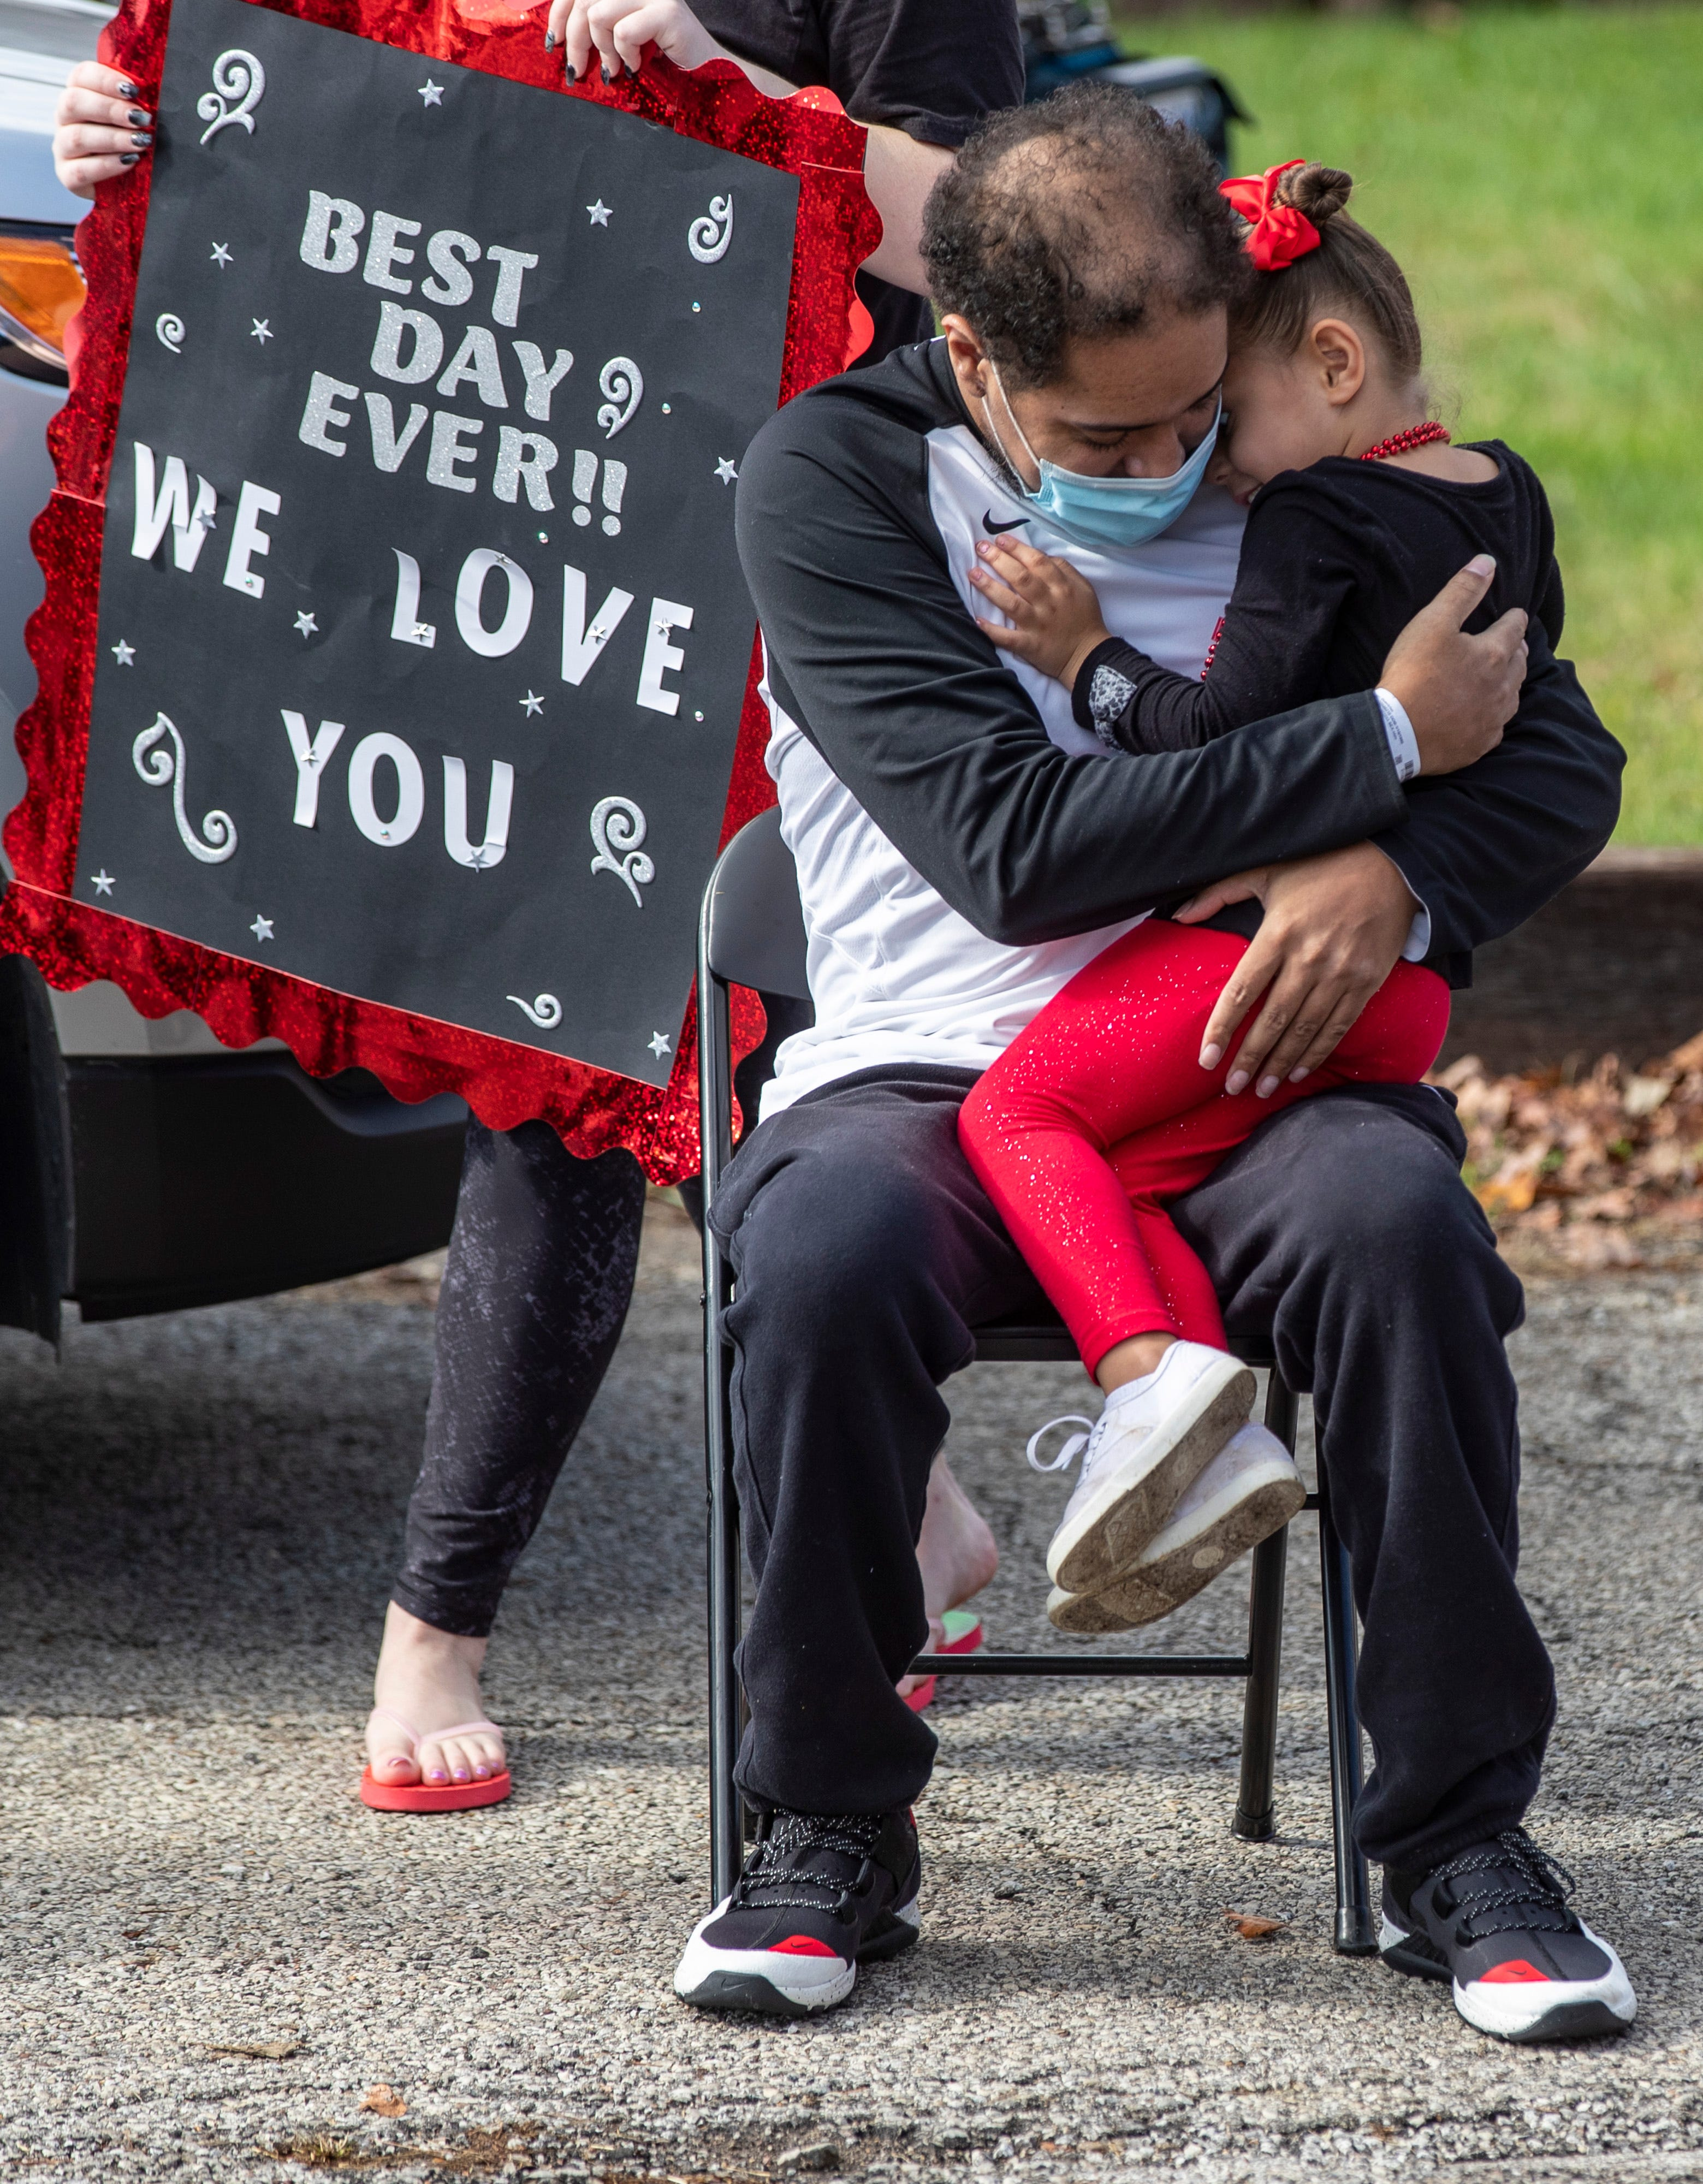 Demetrius Booker, left, embraces his daughter, Mackenzie Booker, 4, after returning home following a 95 day battle with COVID-19 at Louisville Baptist East. Oct. 23, 2020